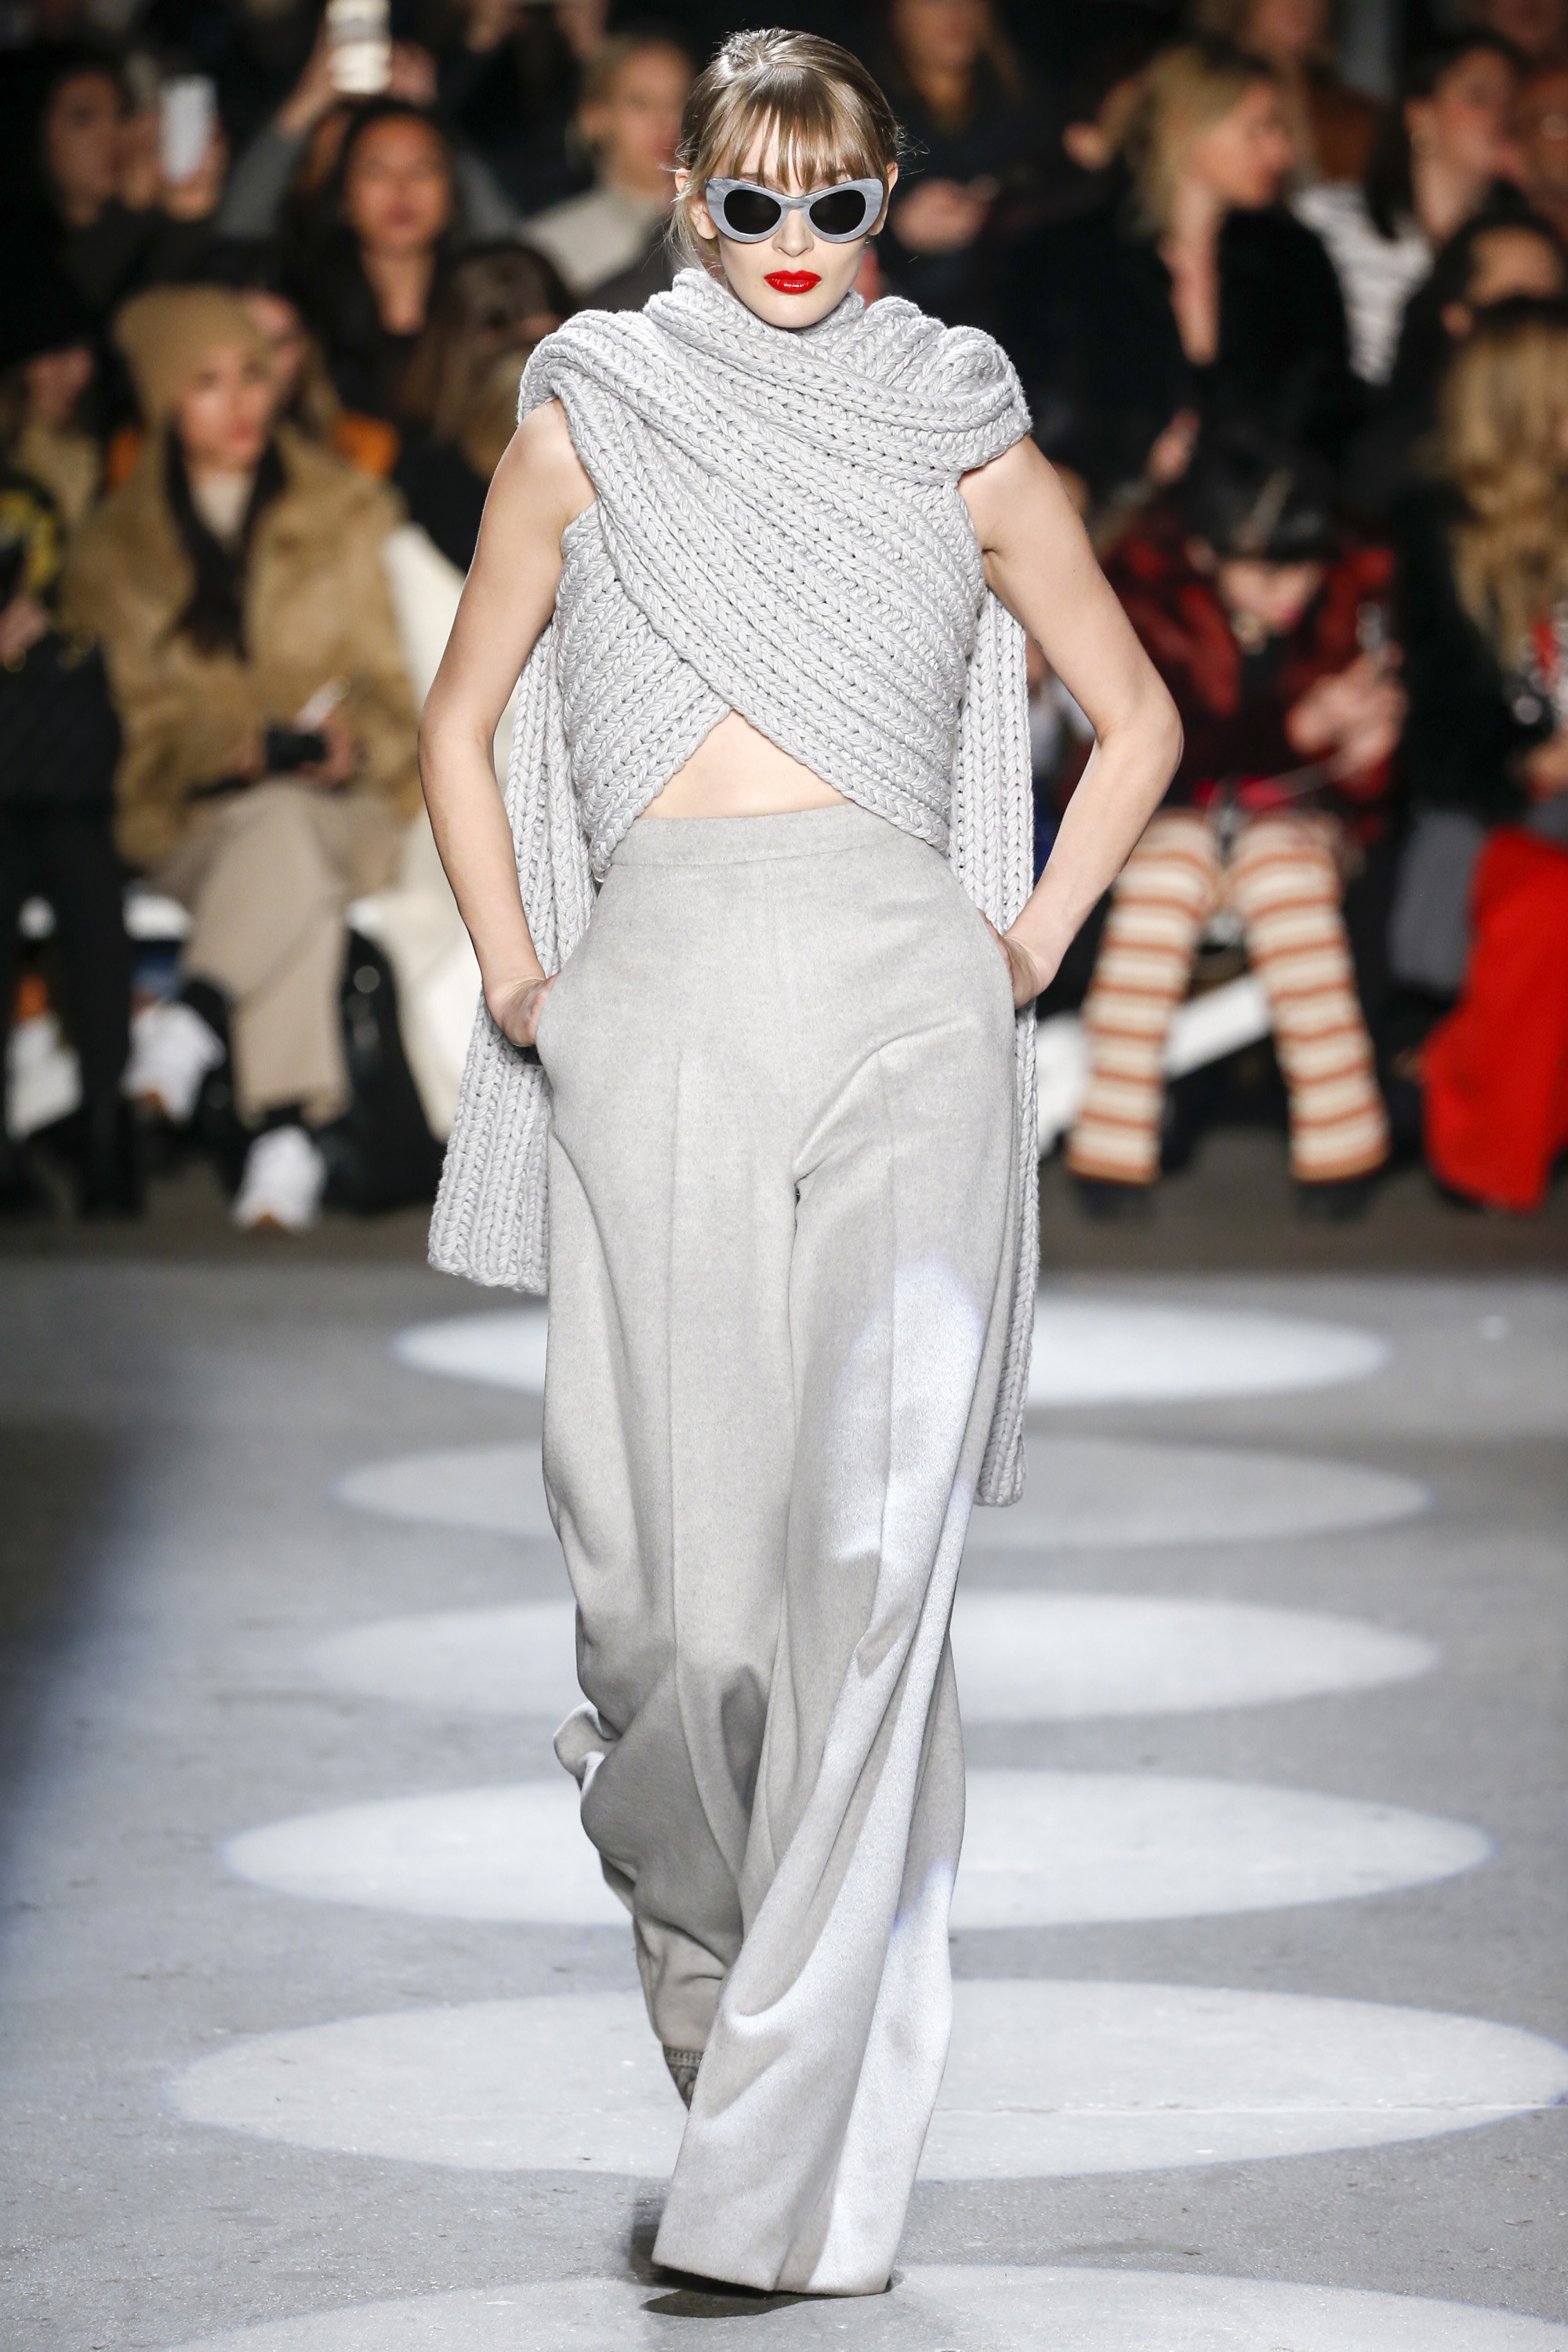 Christian-Siriano-Fall-2016-New-York-Fashion-Week-1.jpg